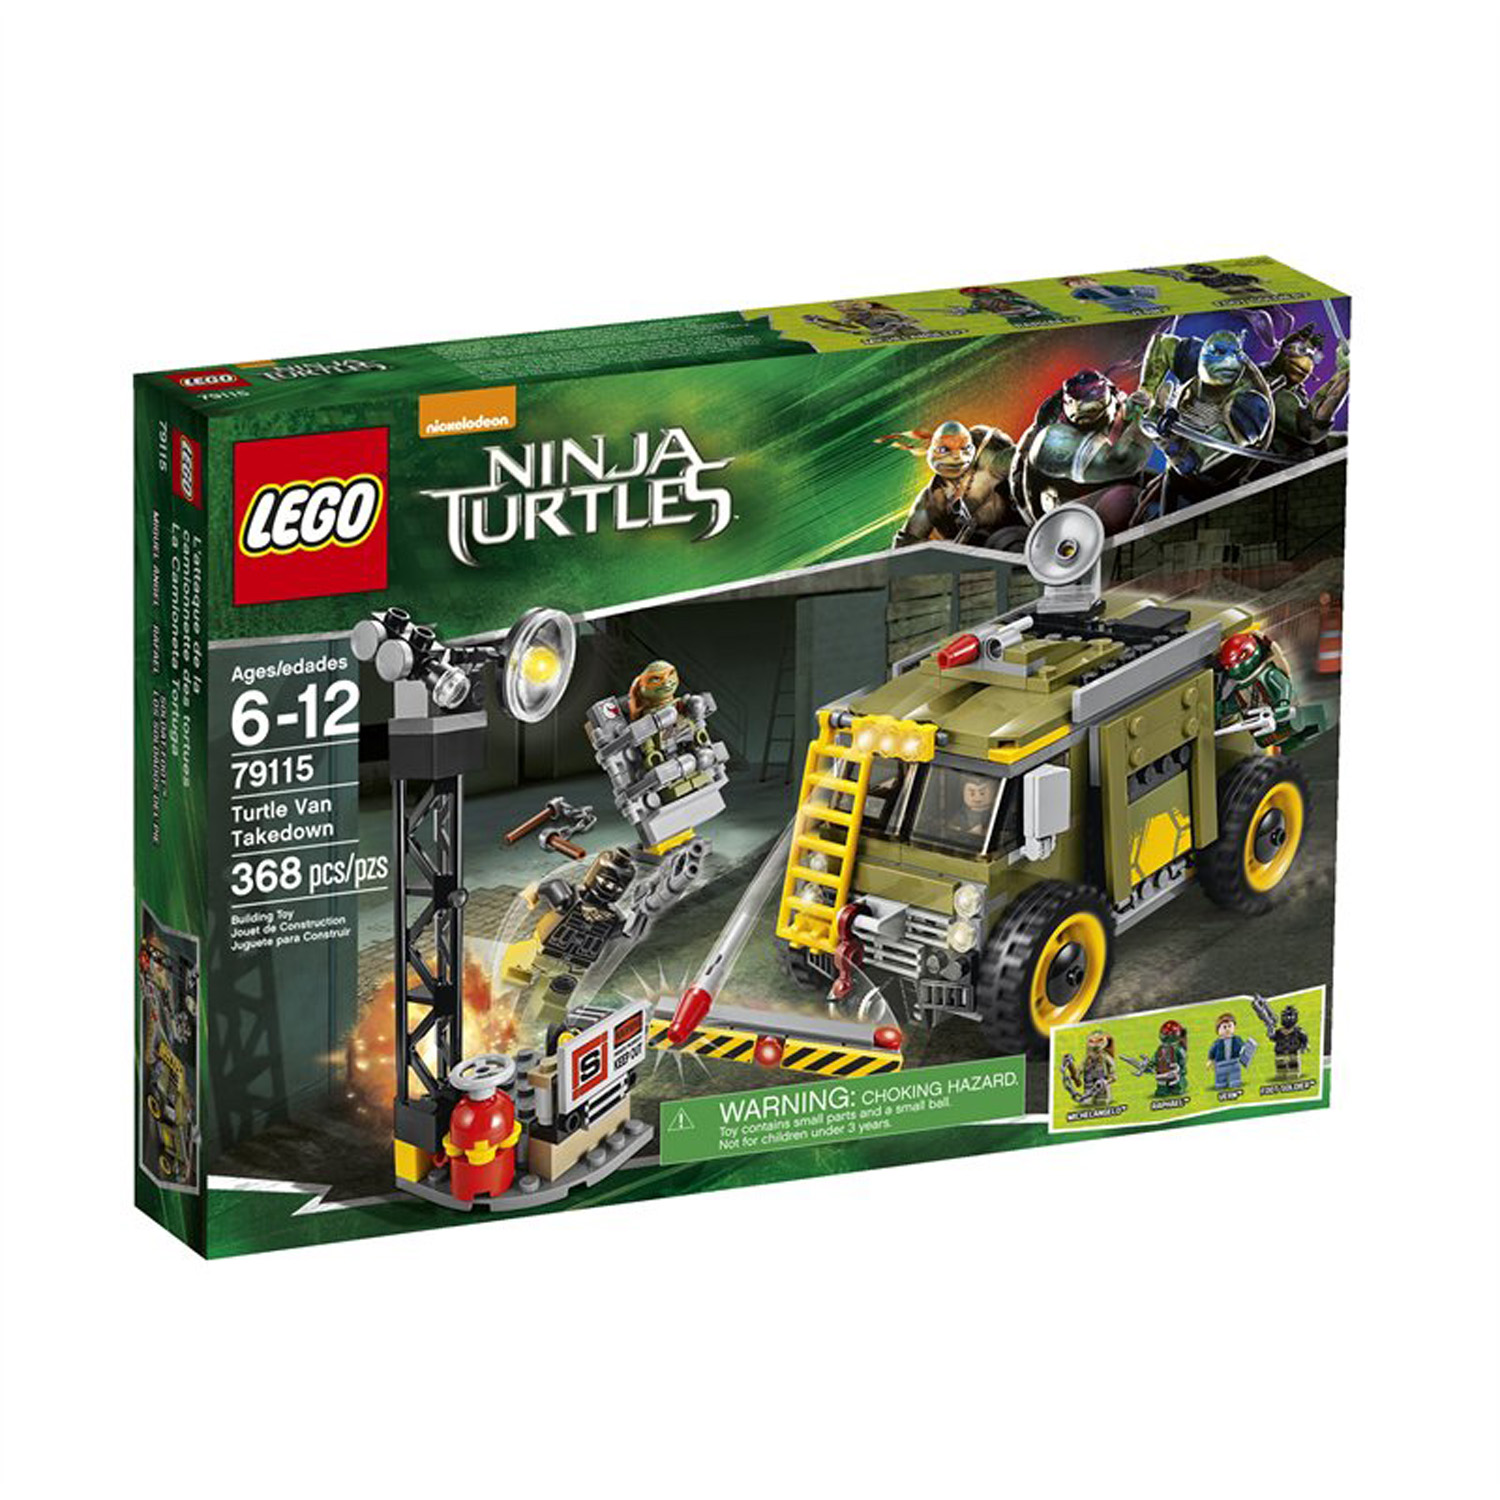 LEGO-x-Teenage-Mutant-Ninja-Turtles-Movie-Set-1